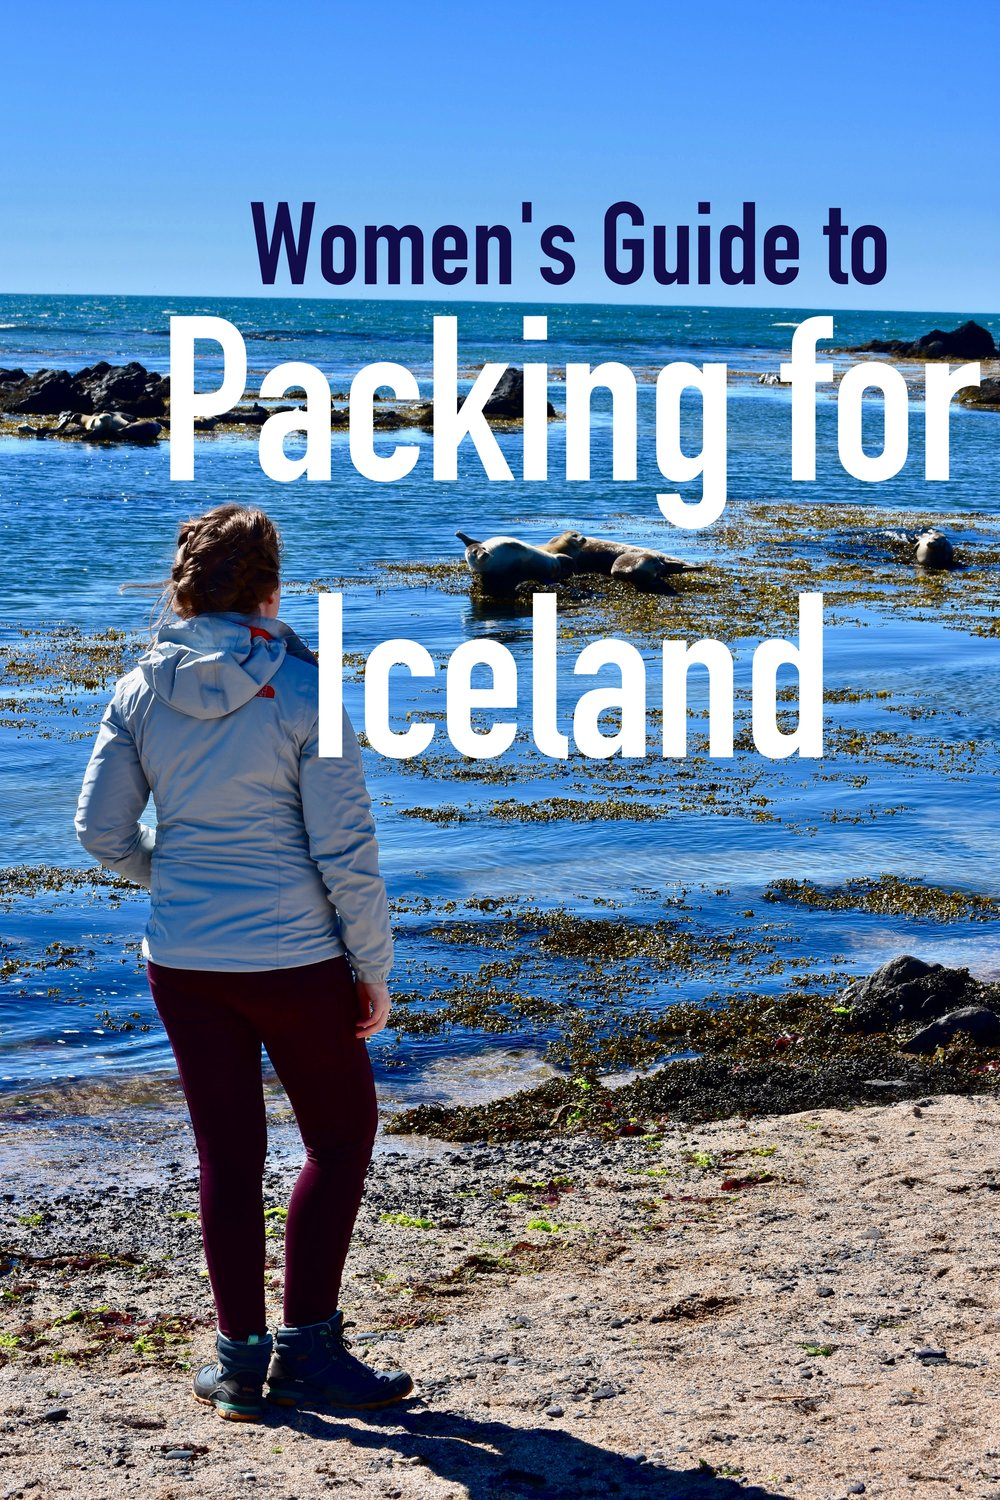 Women's Guide for Packing for Summer In Iceland.  11 Days around the Ring Road in a Carry-On. #packing #packinglist #iceland #carryon #europe #whattopack #summer